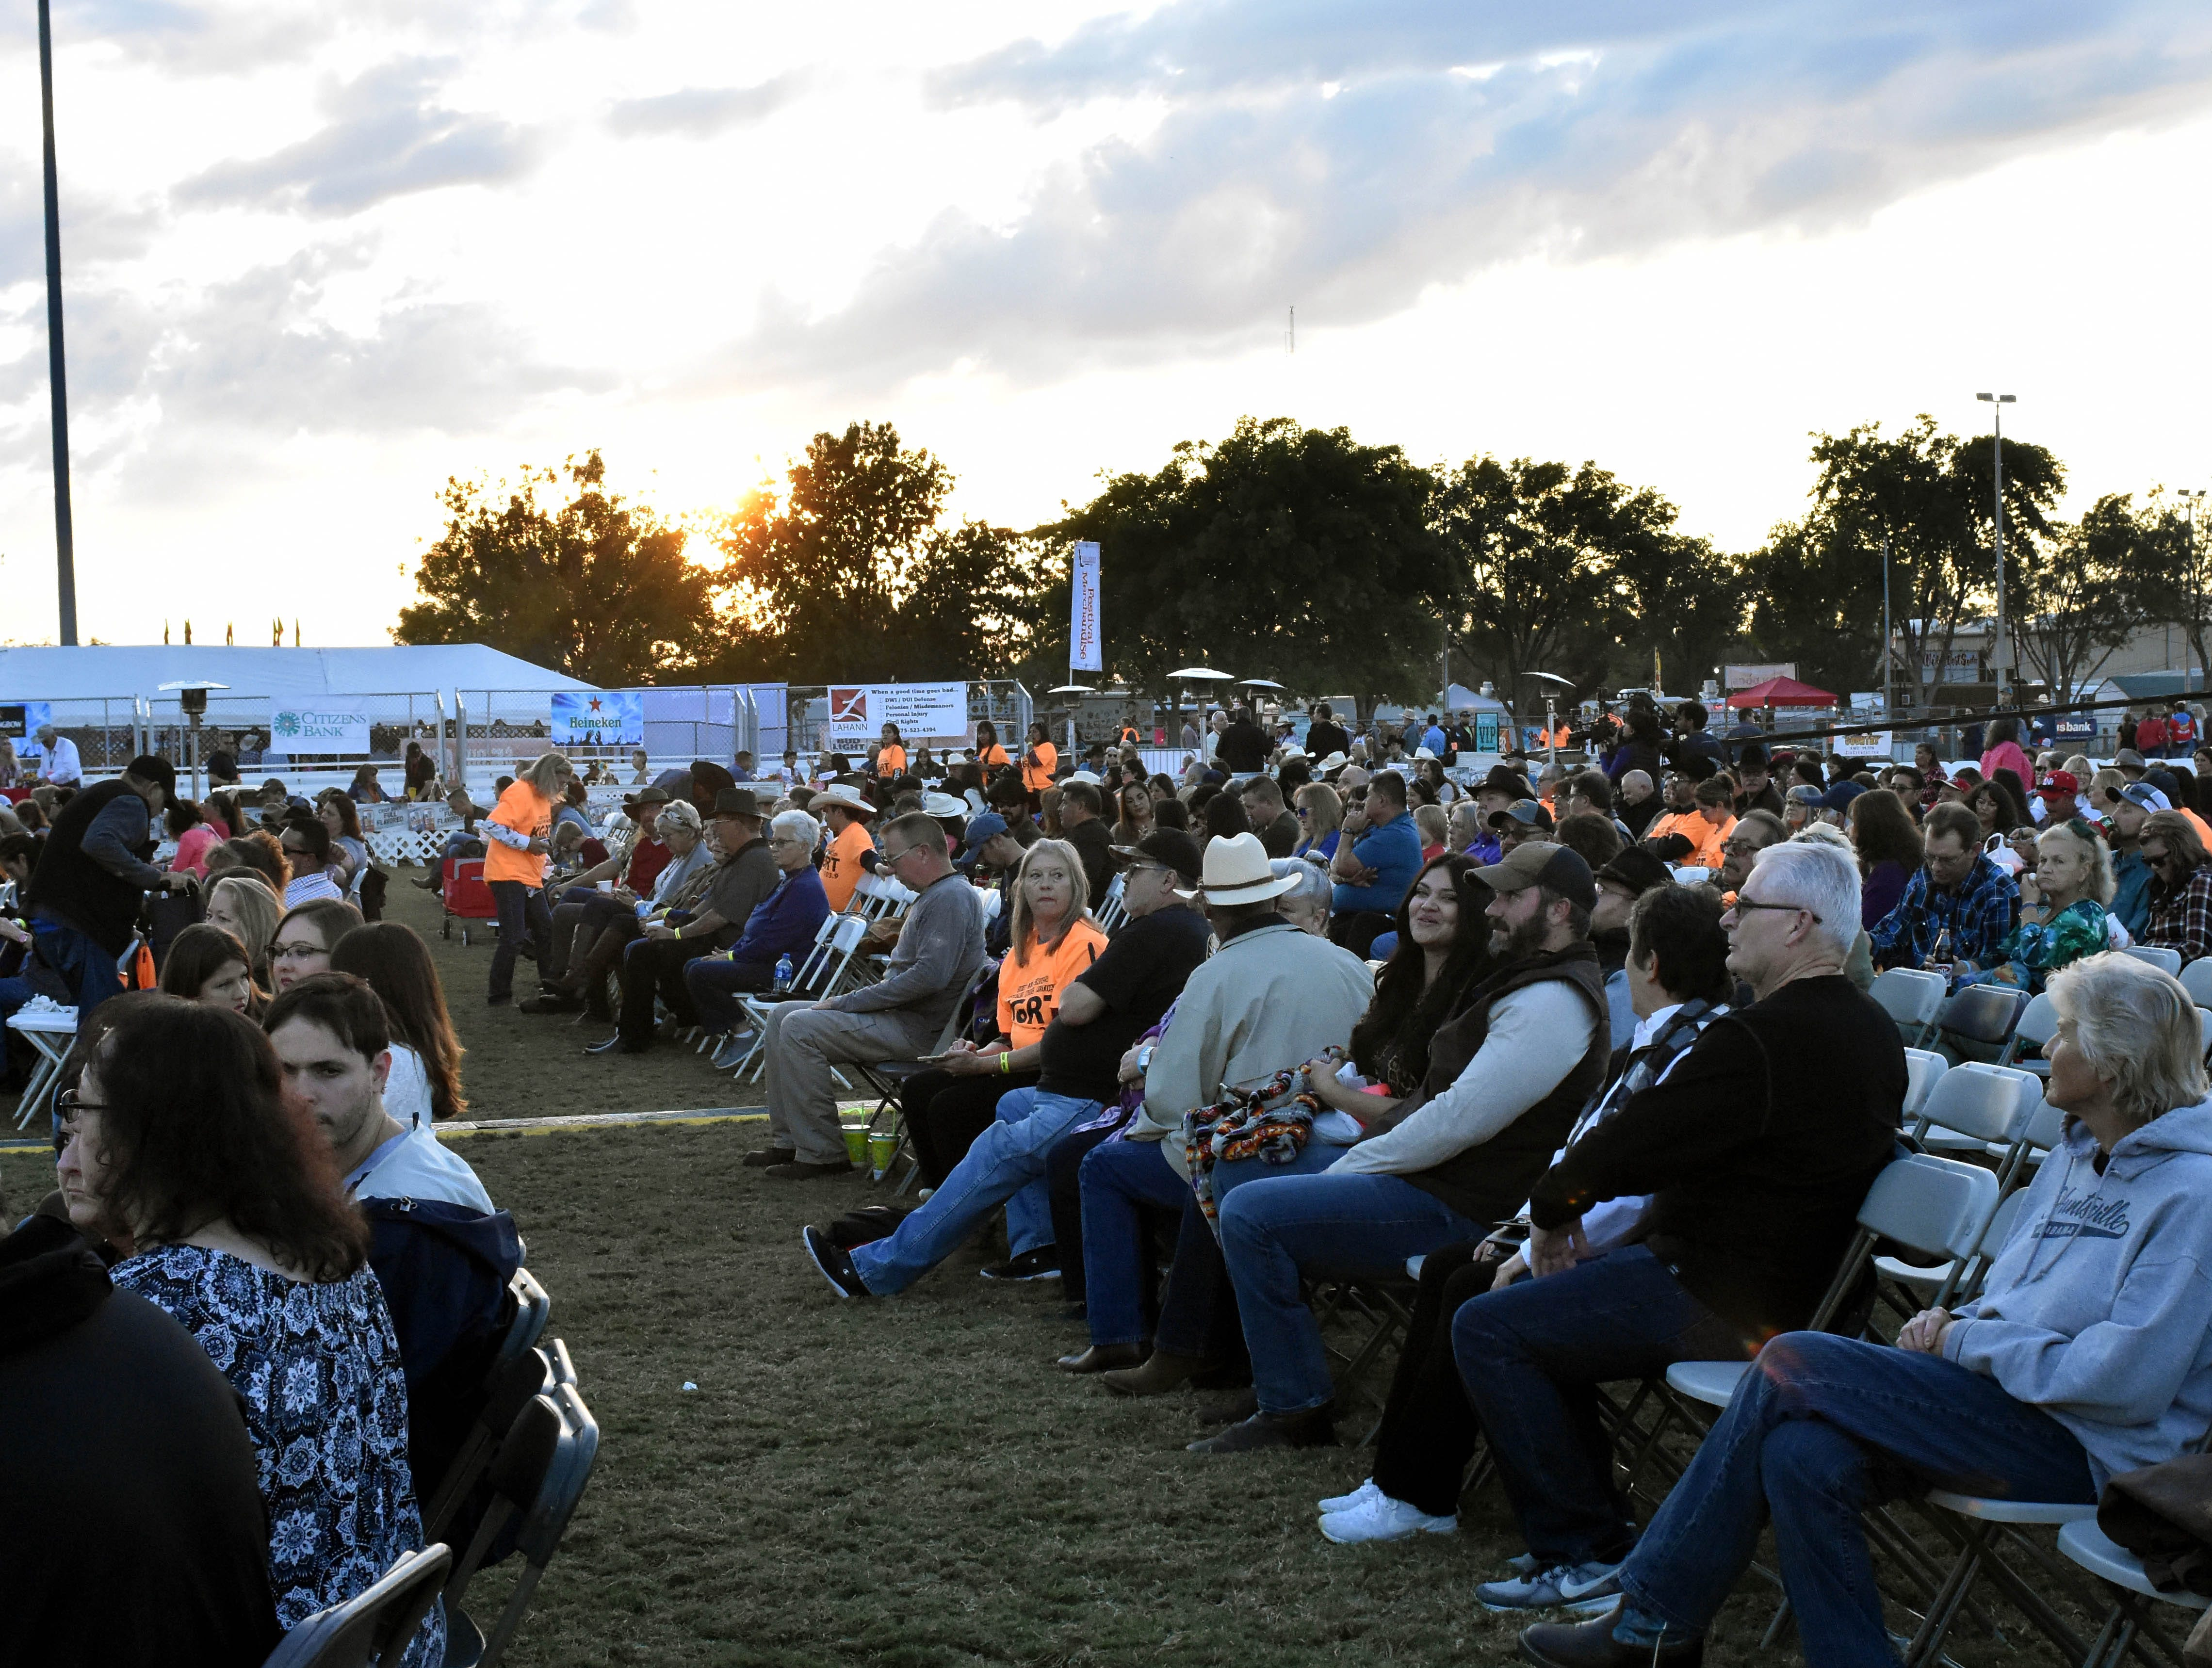 The crowd begins to gather hours before Dwight Yoakum hits the stage at the Las Cruces Country Music Festival on Friday, Oct. 19, 2018.